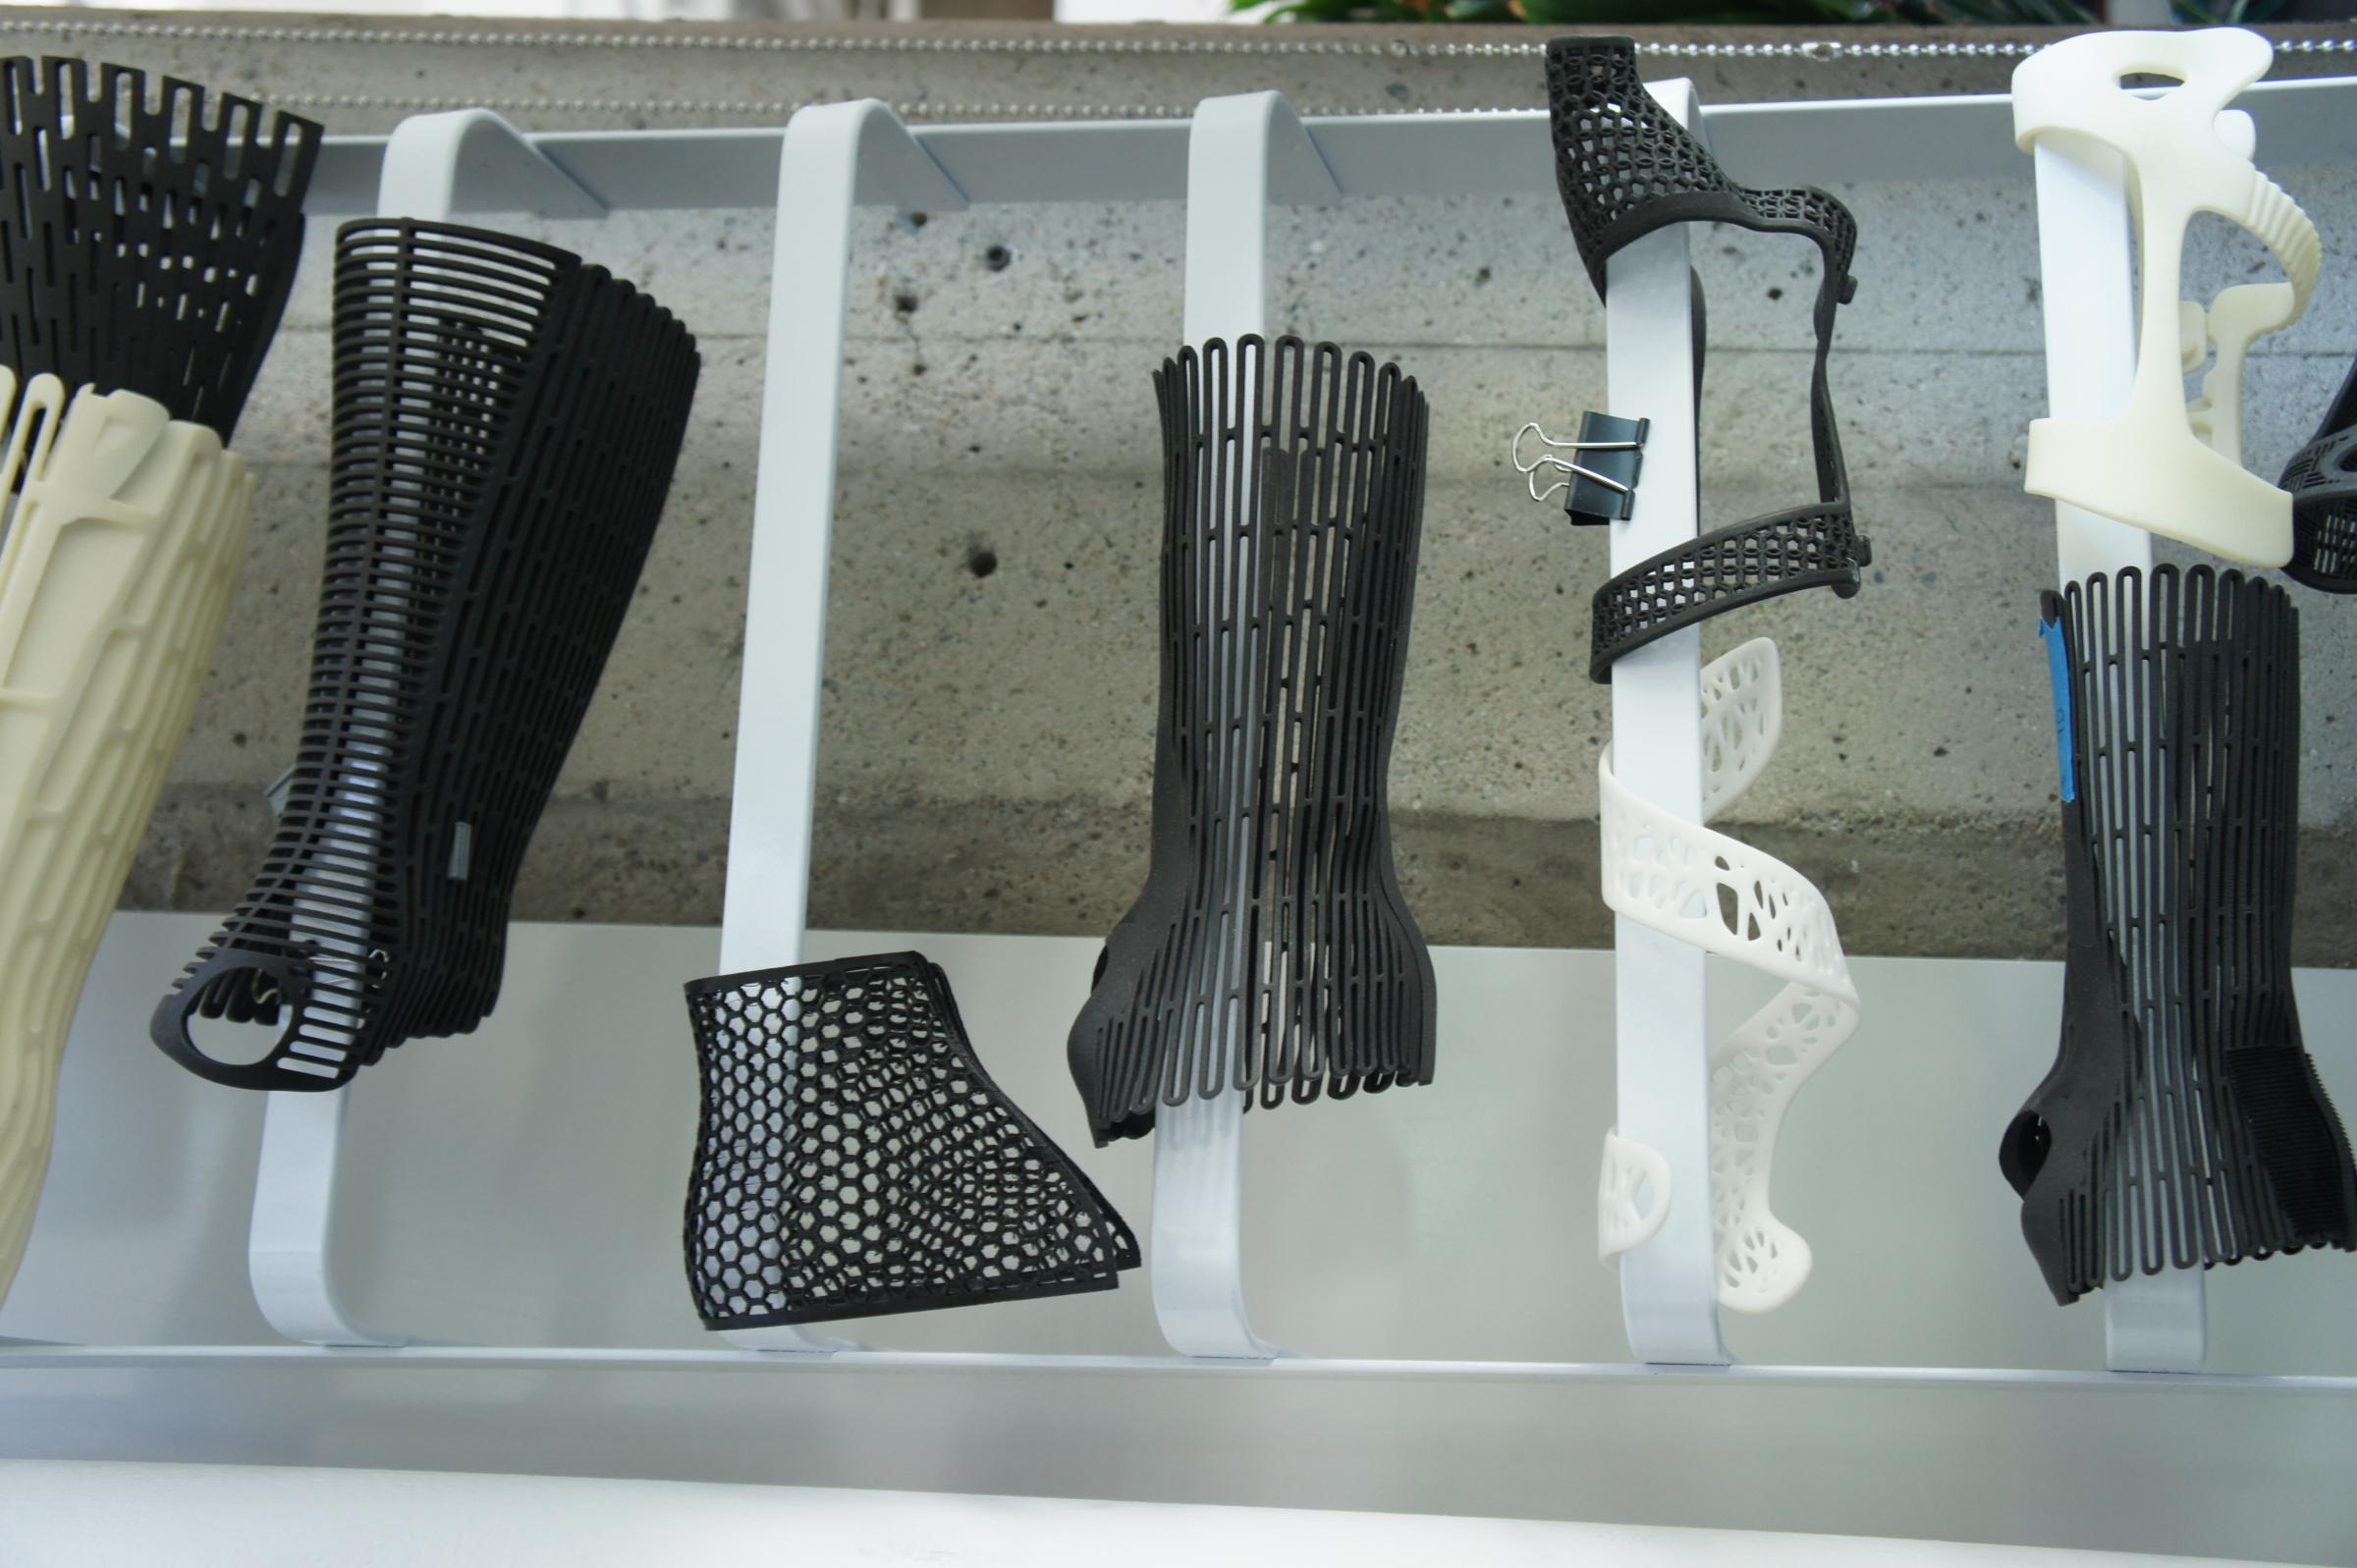 Caption: A selection of different types of Bespoke fairing designs., Credit: Angela Johnston